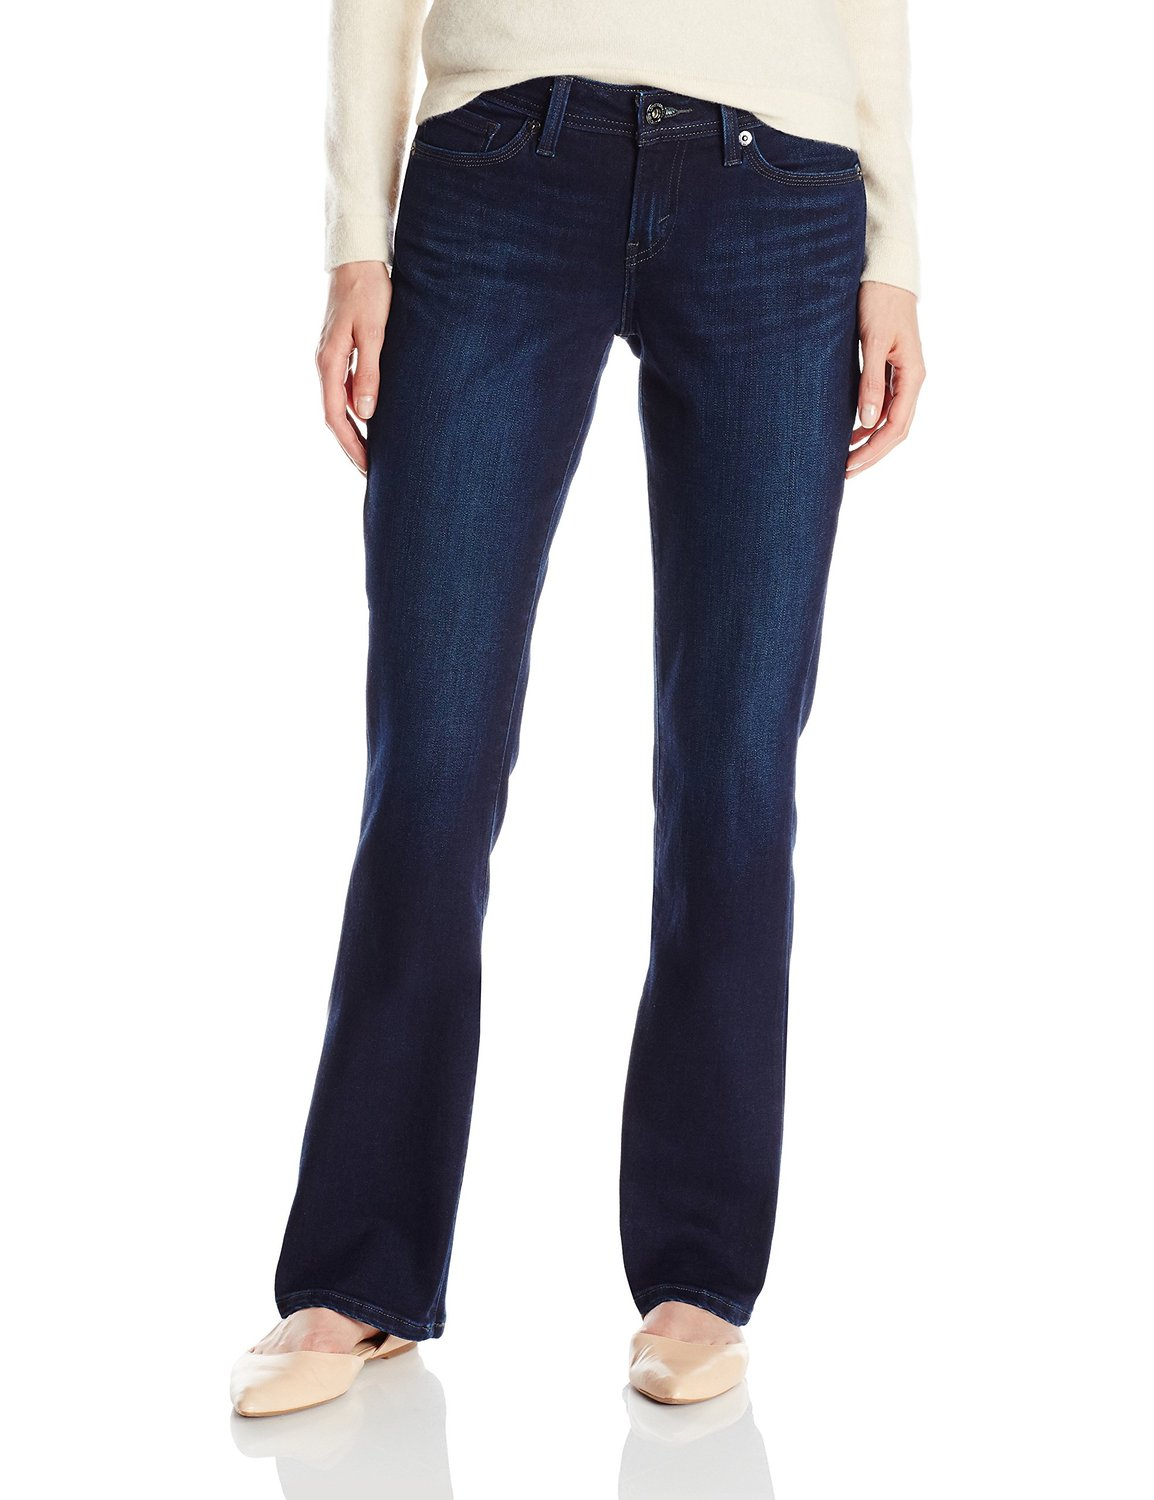 Levi's Casual Jeans